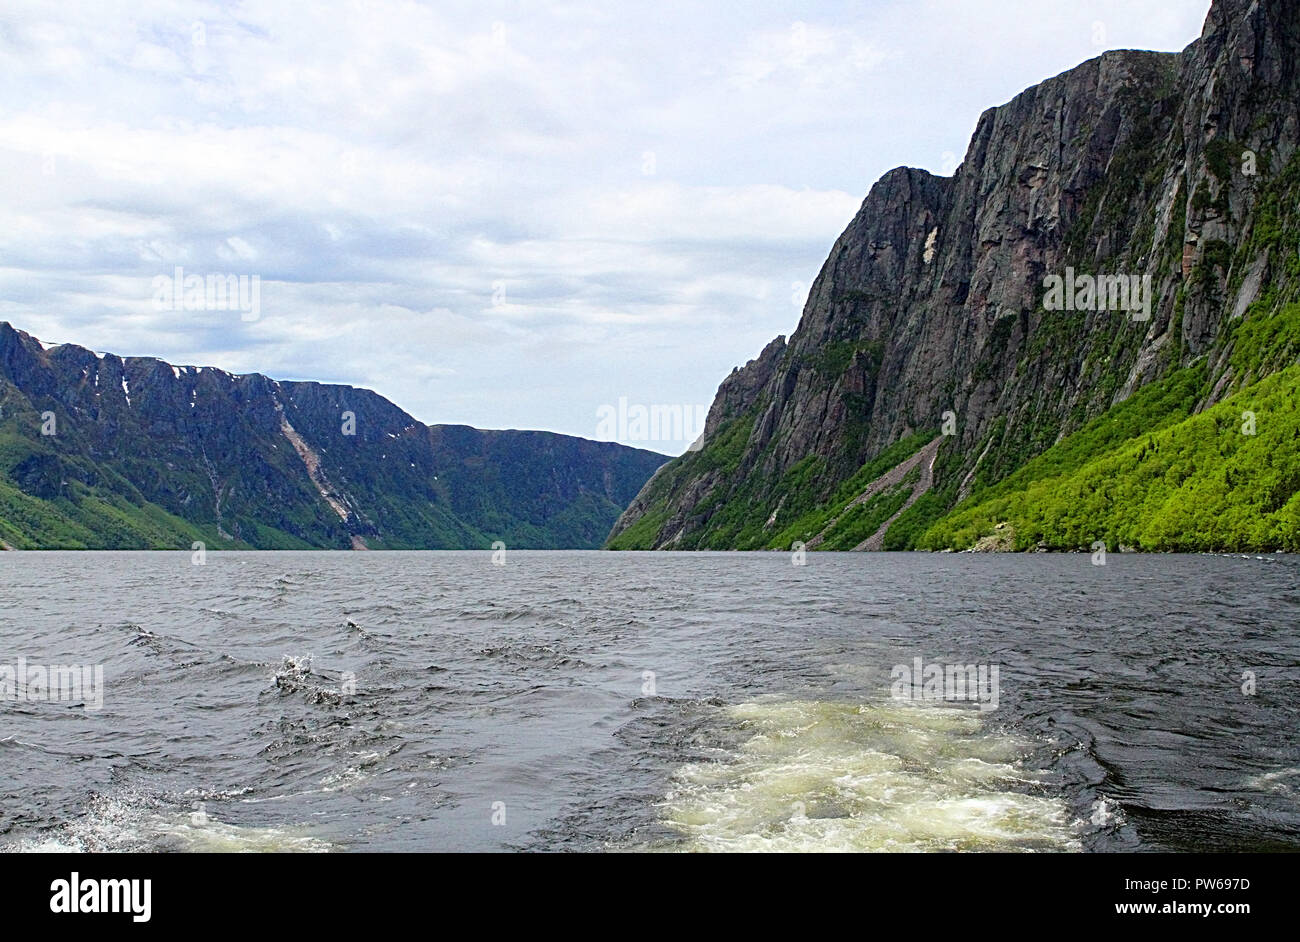 Western Brook Pond and Gros Morne National Park, Newfoundland, Canada, from the tour boat and Tabletop Mountains, inland fjiord - Stock Image